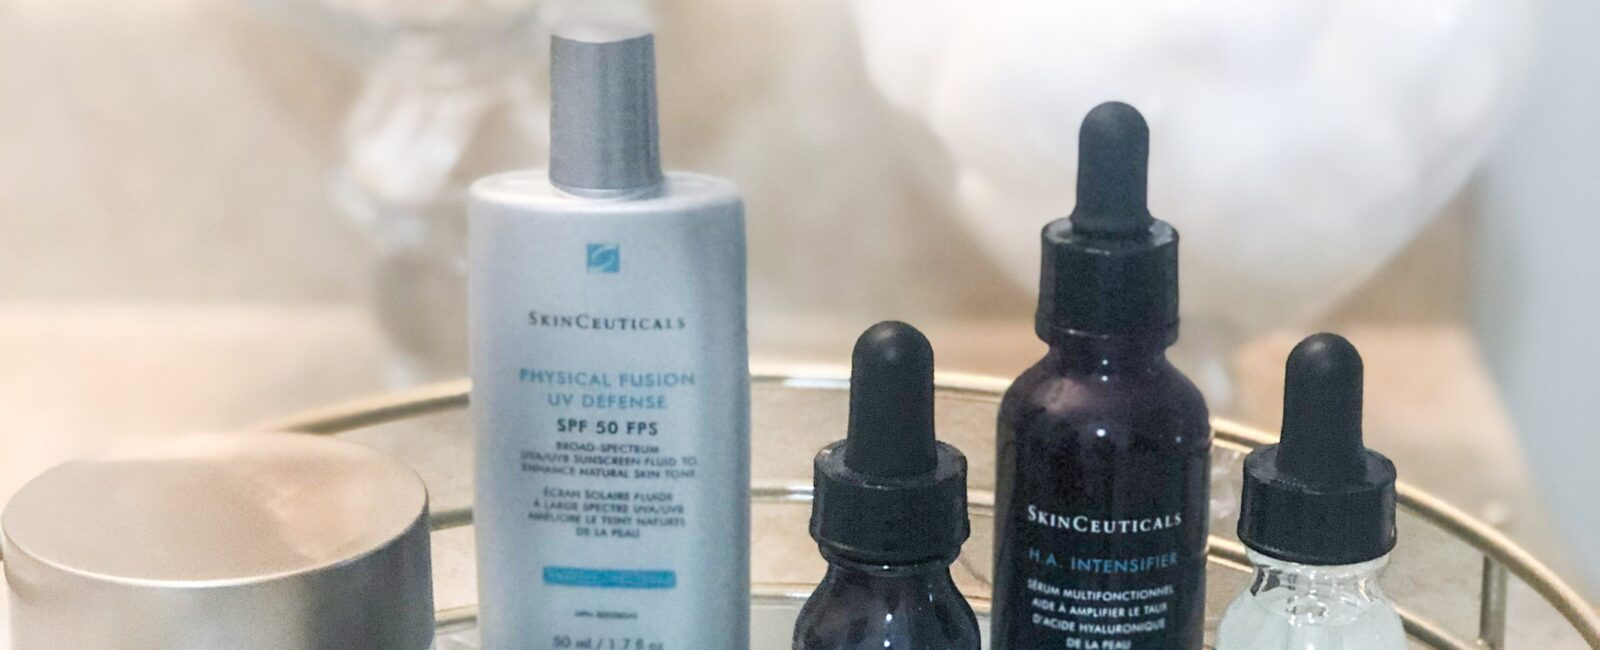 Products I am loving from SkinCeuticals